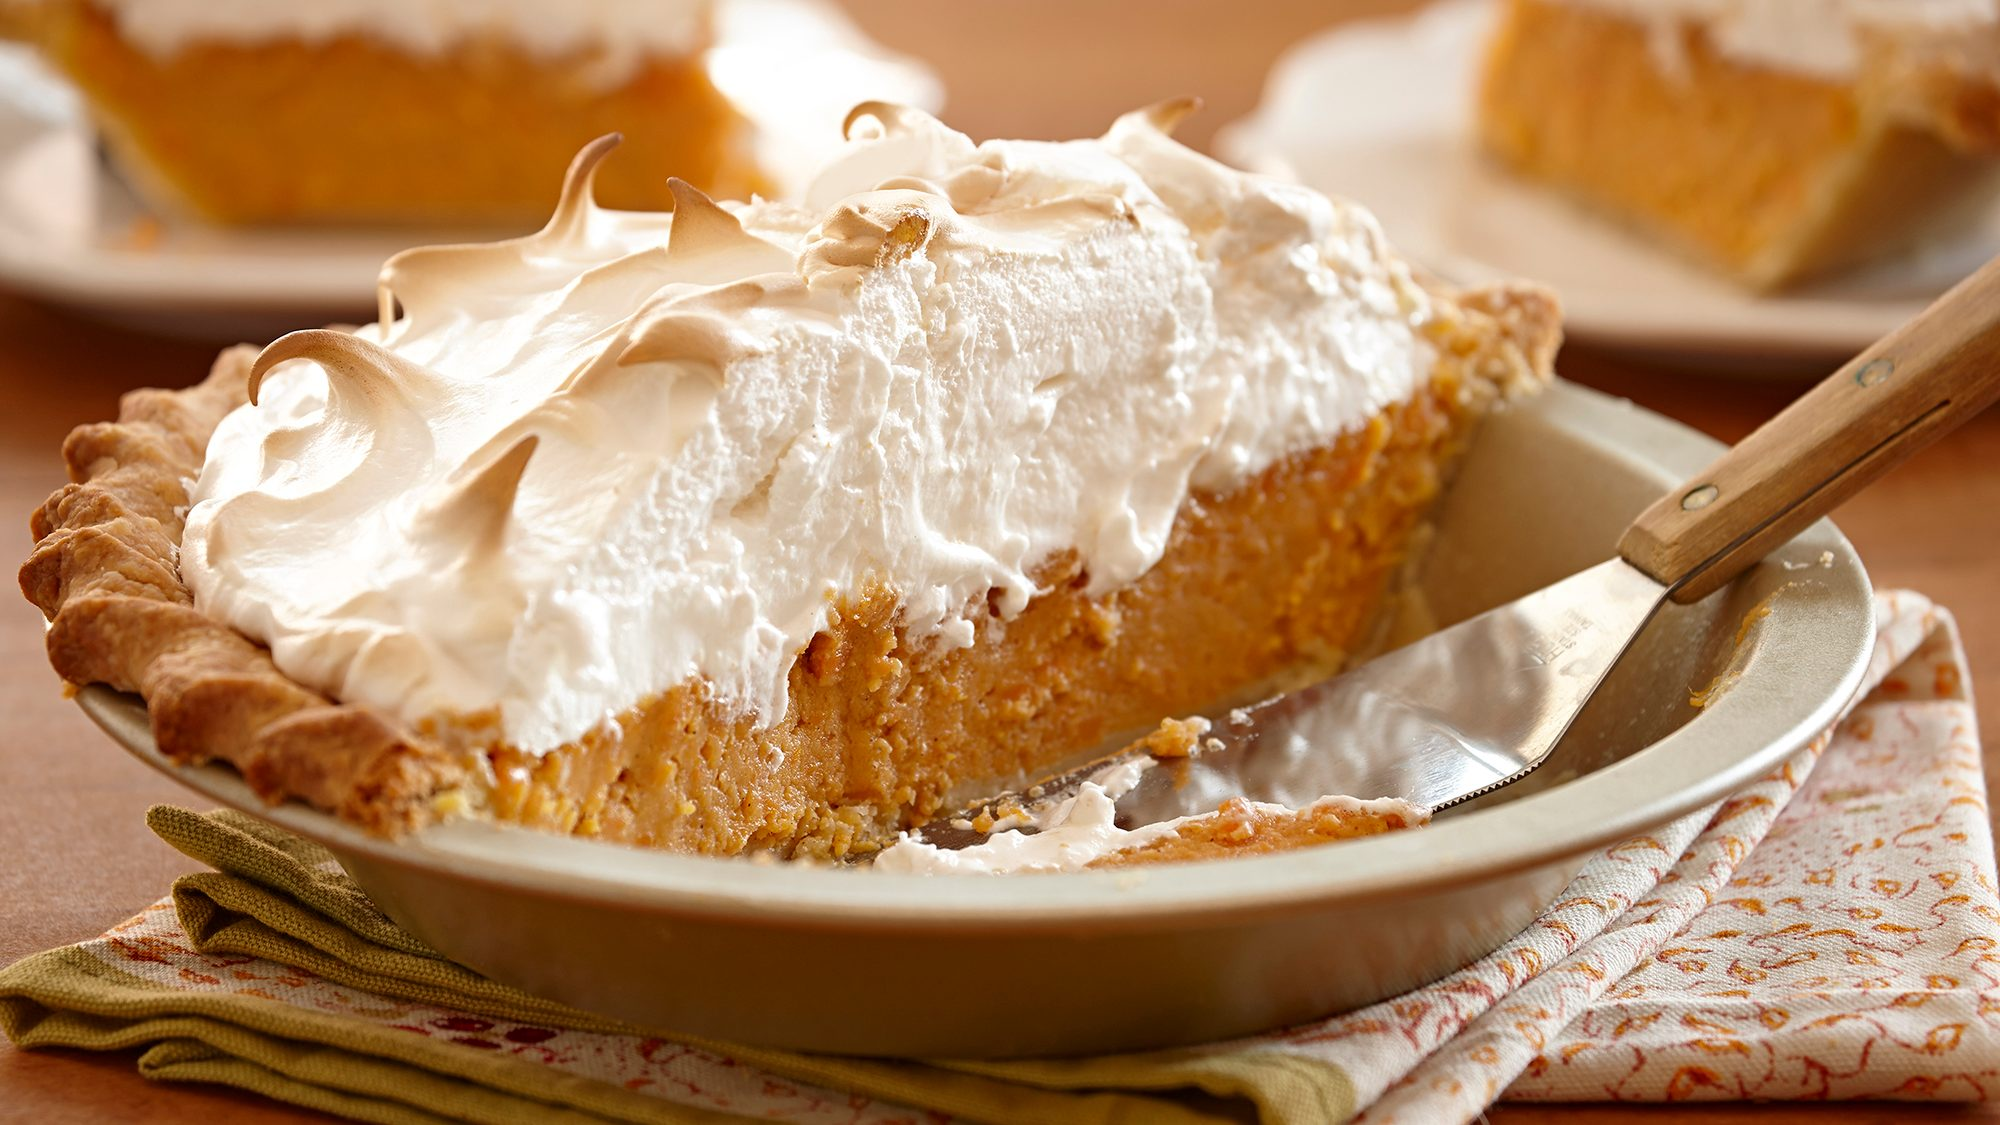 sweet-potato-pie-with-marshmallow-meringue.jpg